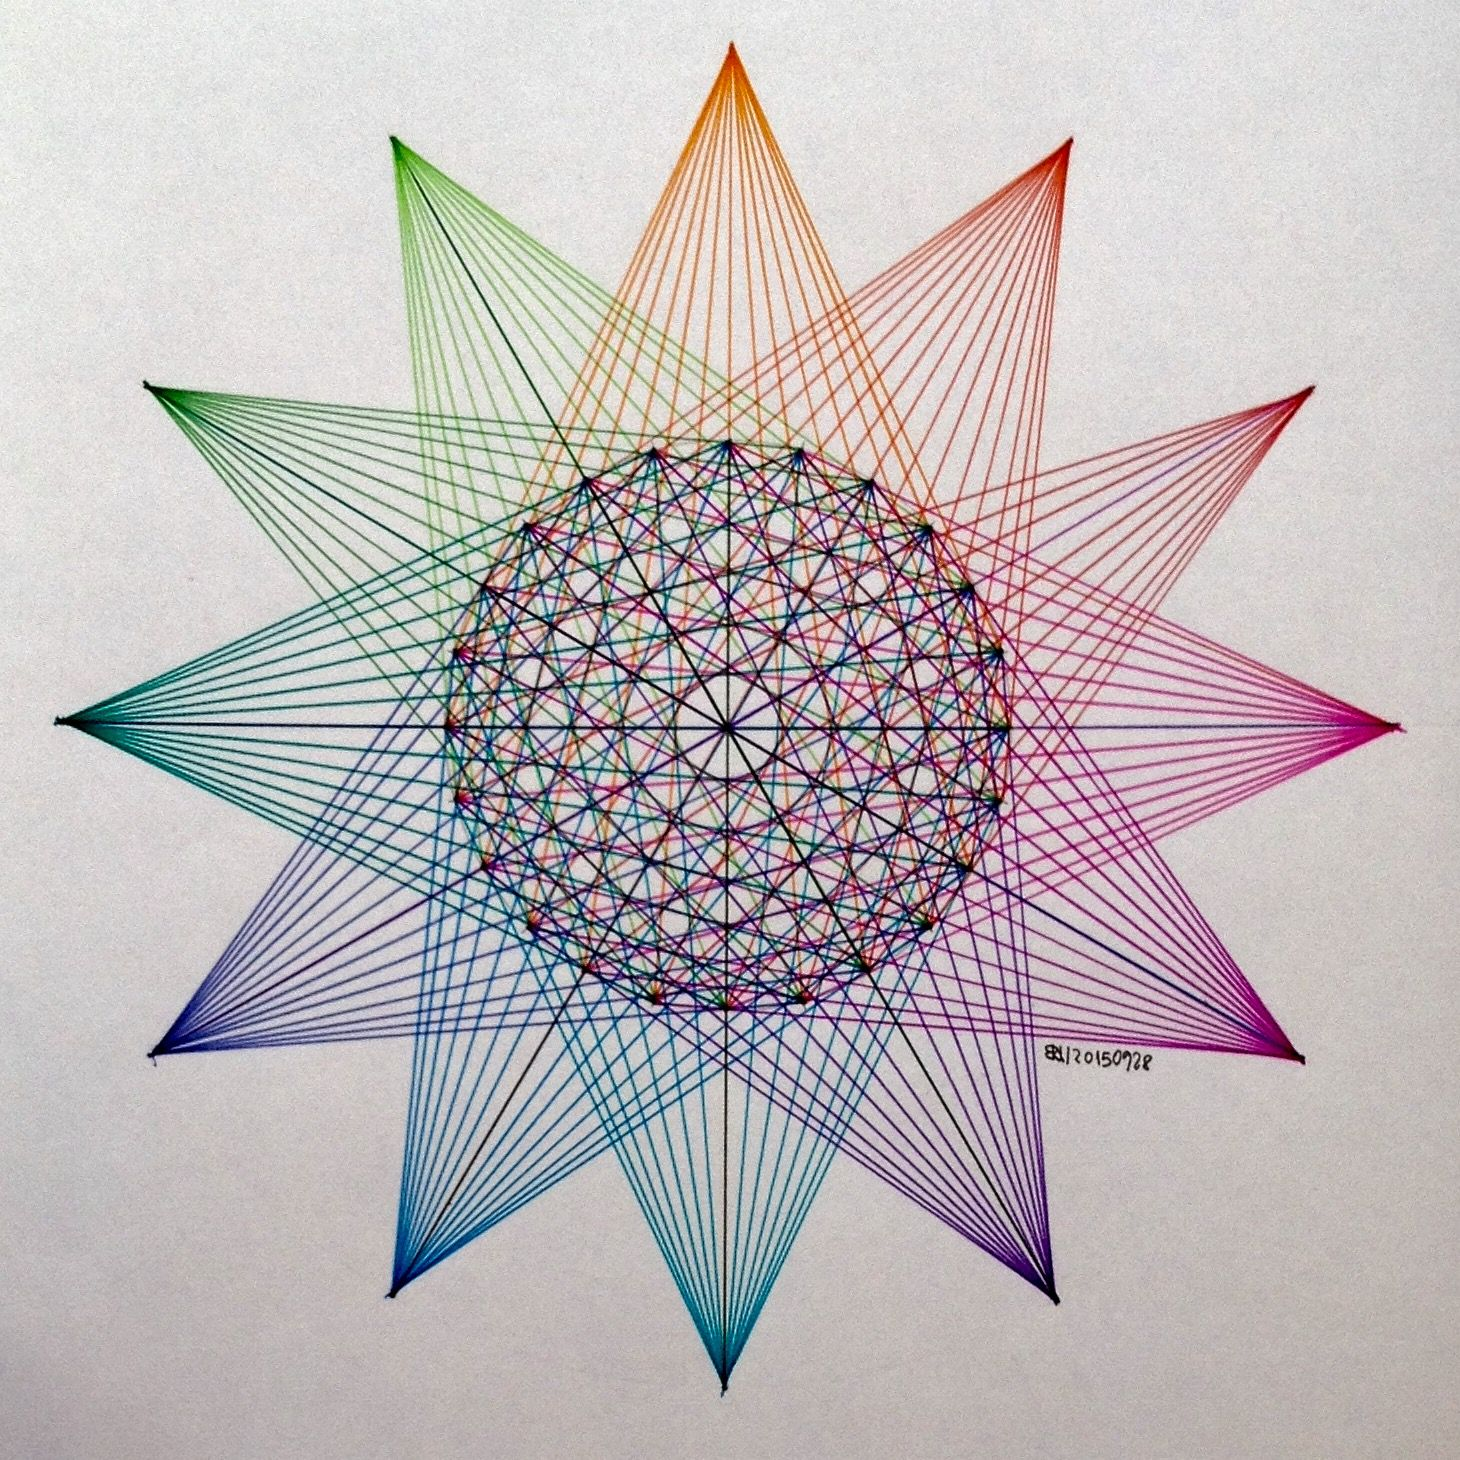 #regolo54 #sangaku #geometry #symmetry #patterns #math # ...